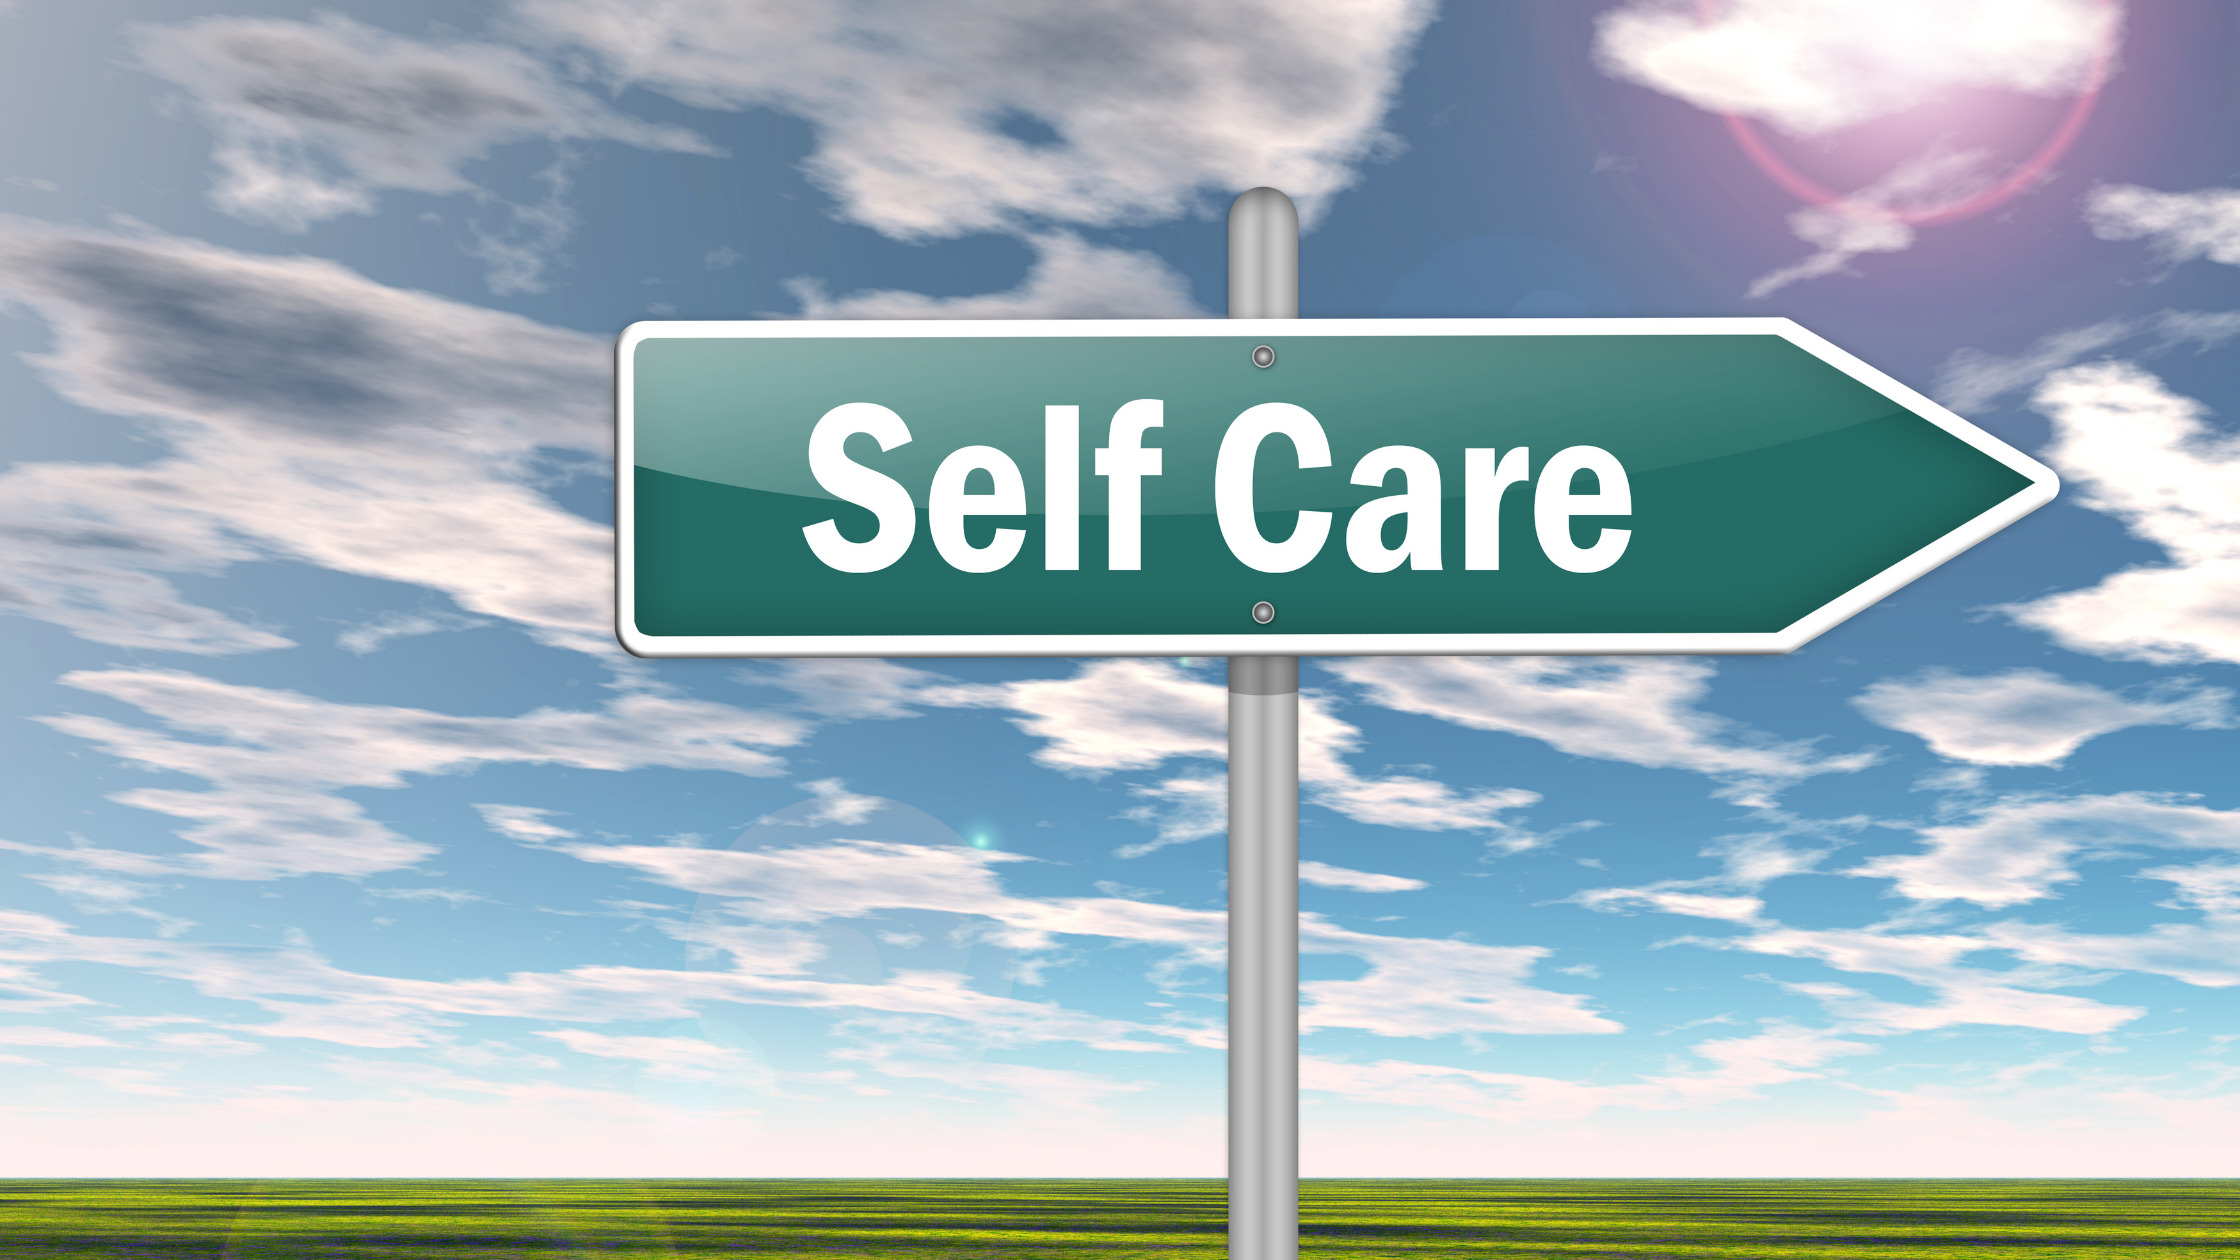 6 Ways To Practice Self Care And Stay Focused On Your Future